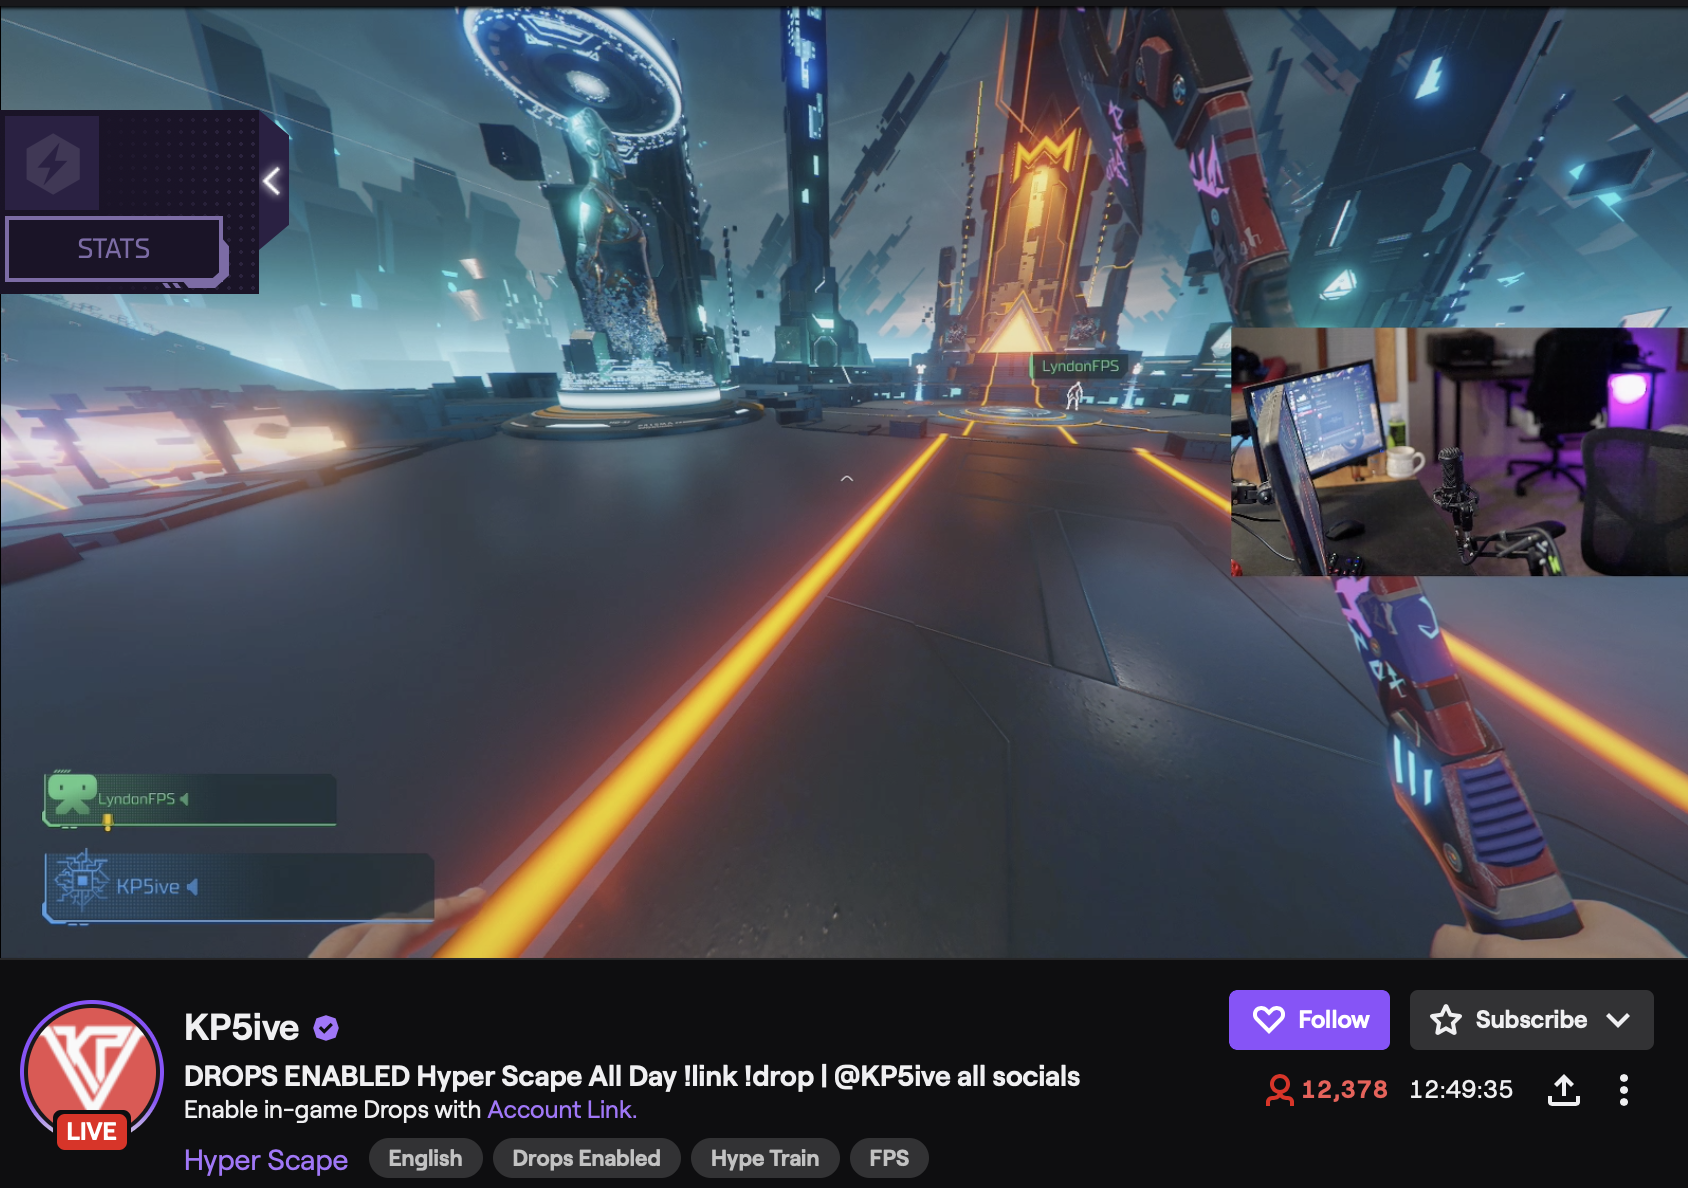 A streamer is playing a game of Hyper Scape with Twitch Drops turned on.